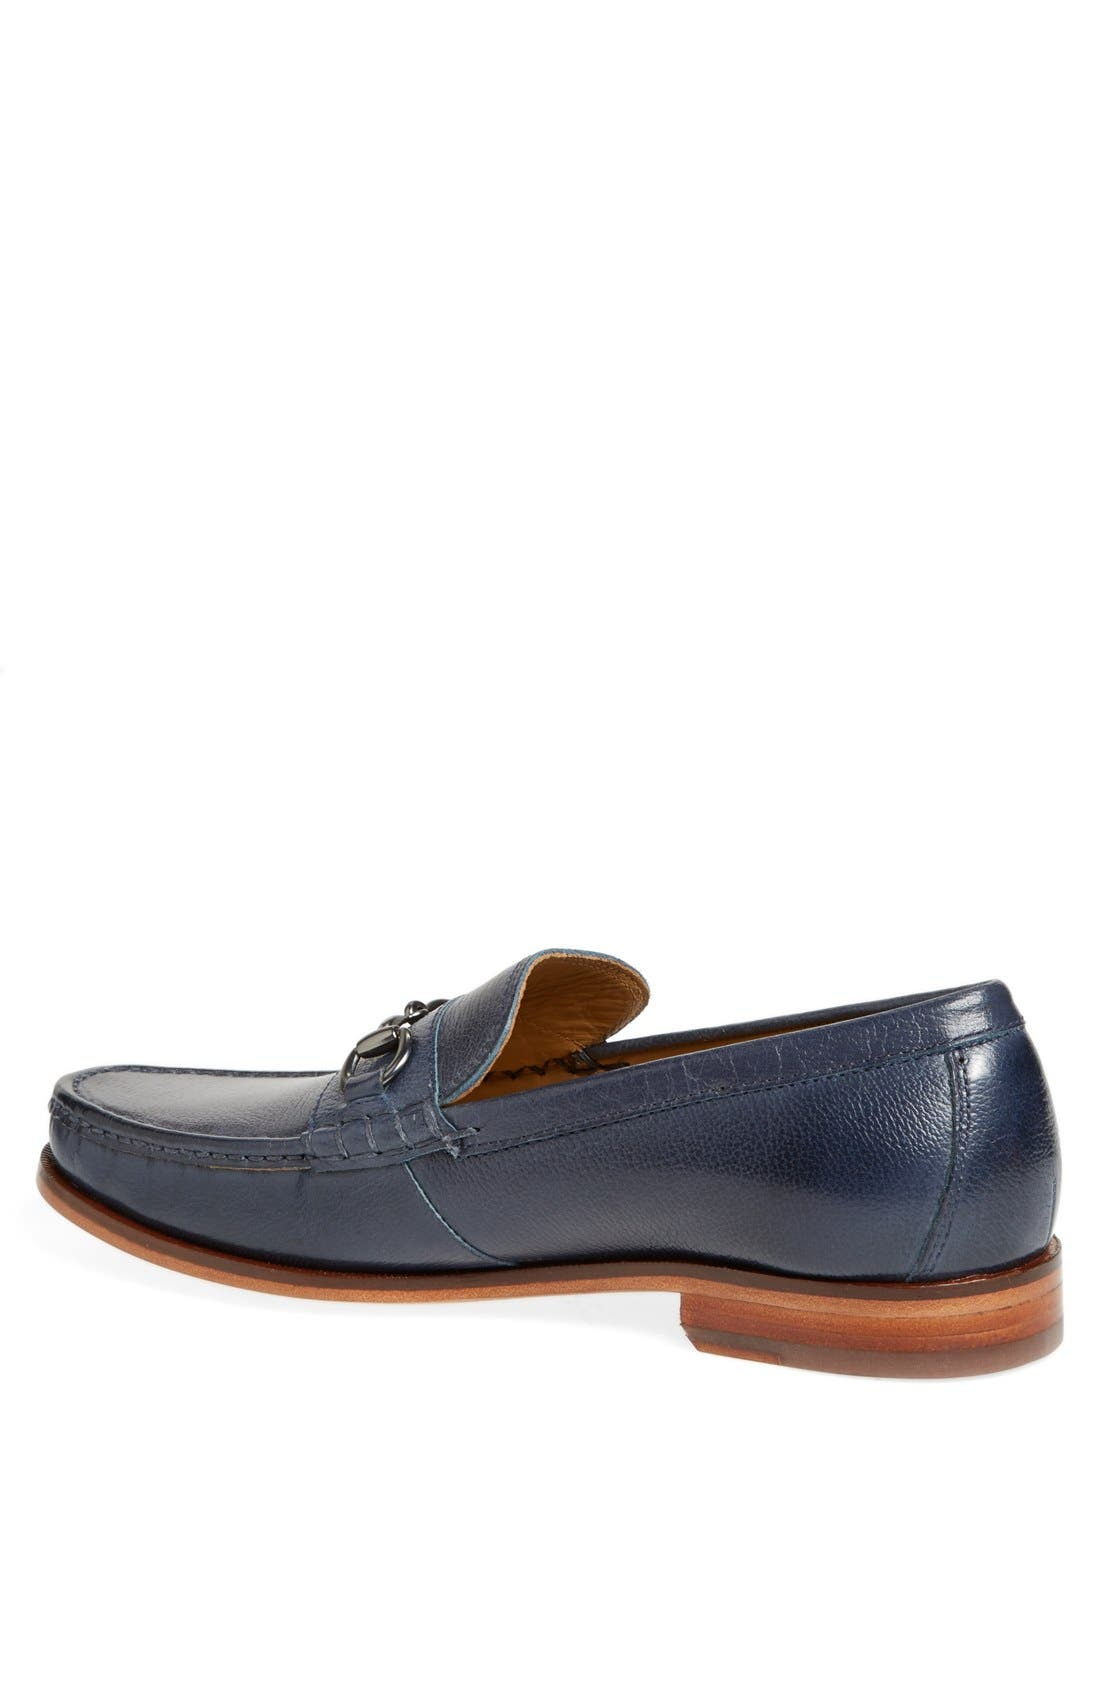 Alternate Image 2  - Cole Haan 'Hudson Square' Bit Loafer   (Men)